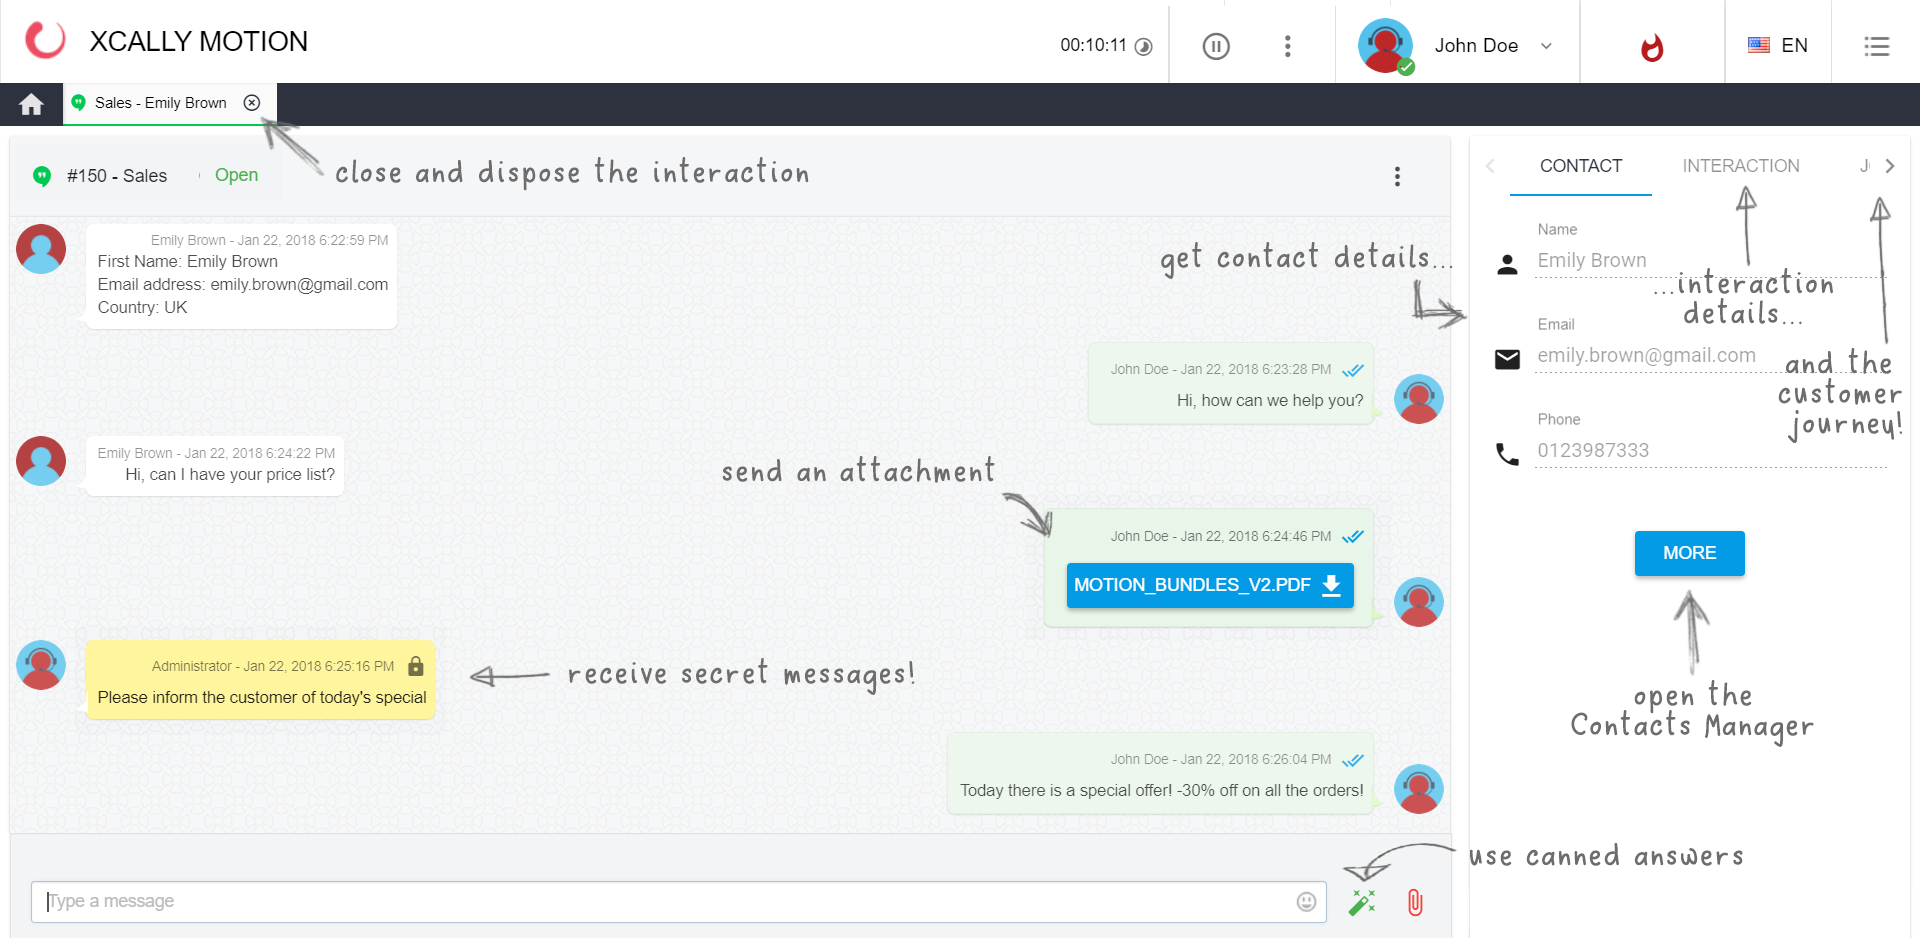 In the interaction view, agents can receive and send messages, attachments, canned answers, and can immediately see also contact info, interaction details and the customer journey